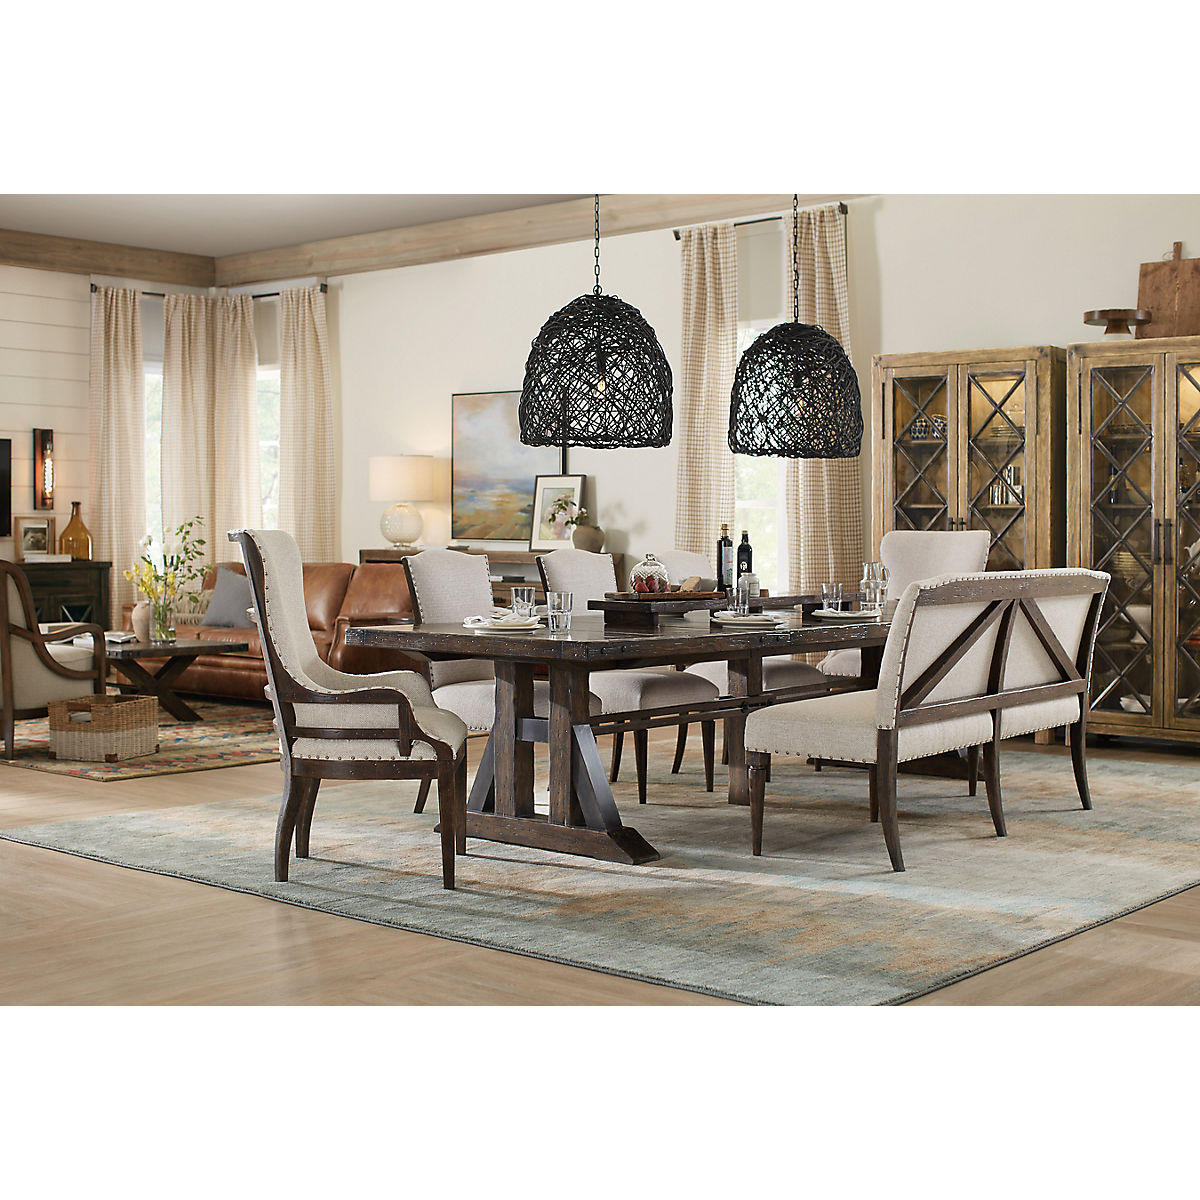 Tremendous Roslyn County 5 Piece Rectangle Dining Room Set Star Furniture Home Interior And Landscaping Transignezvosmurscom